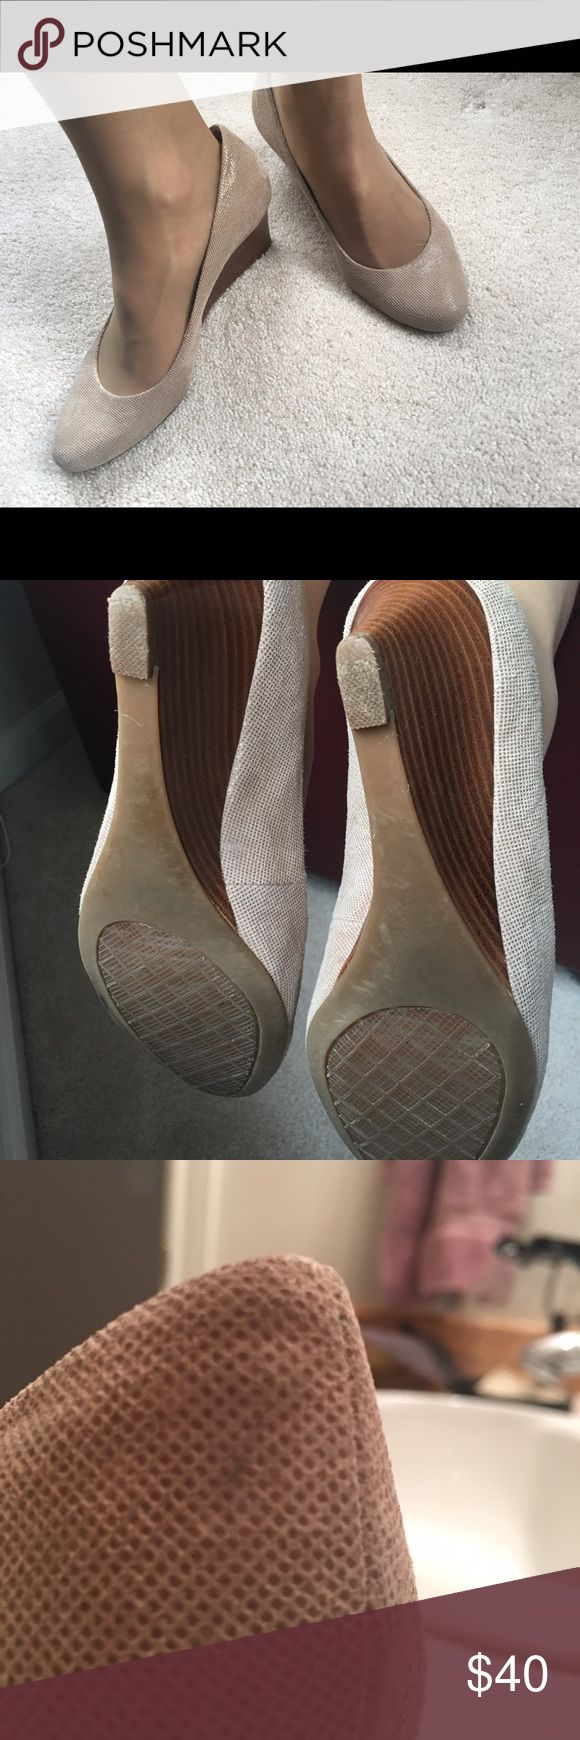 "Calvin Klein wedge dress shoes Beautiful, comfortable wedge heels.  Size 8.5, shimmery winter white shoes which could be for dress or slacks.  2.5"" heel.  I love love these shoes just never wear them. ☹️ Calvin Klein Shoes Wedges"